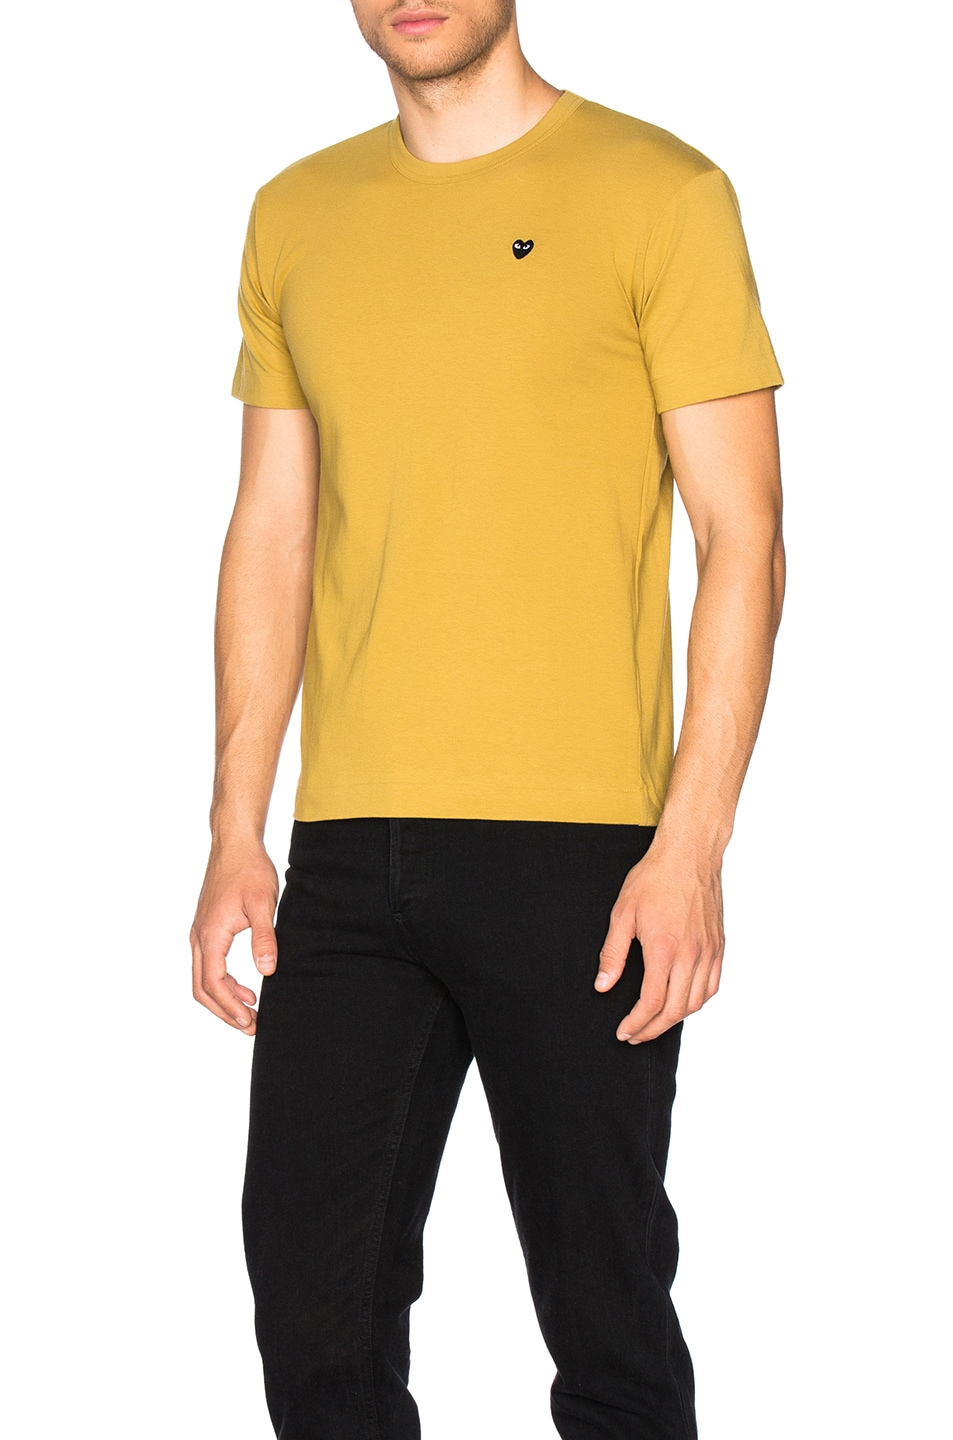 Small Black Emblem Cotton Tee In Yellow